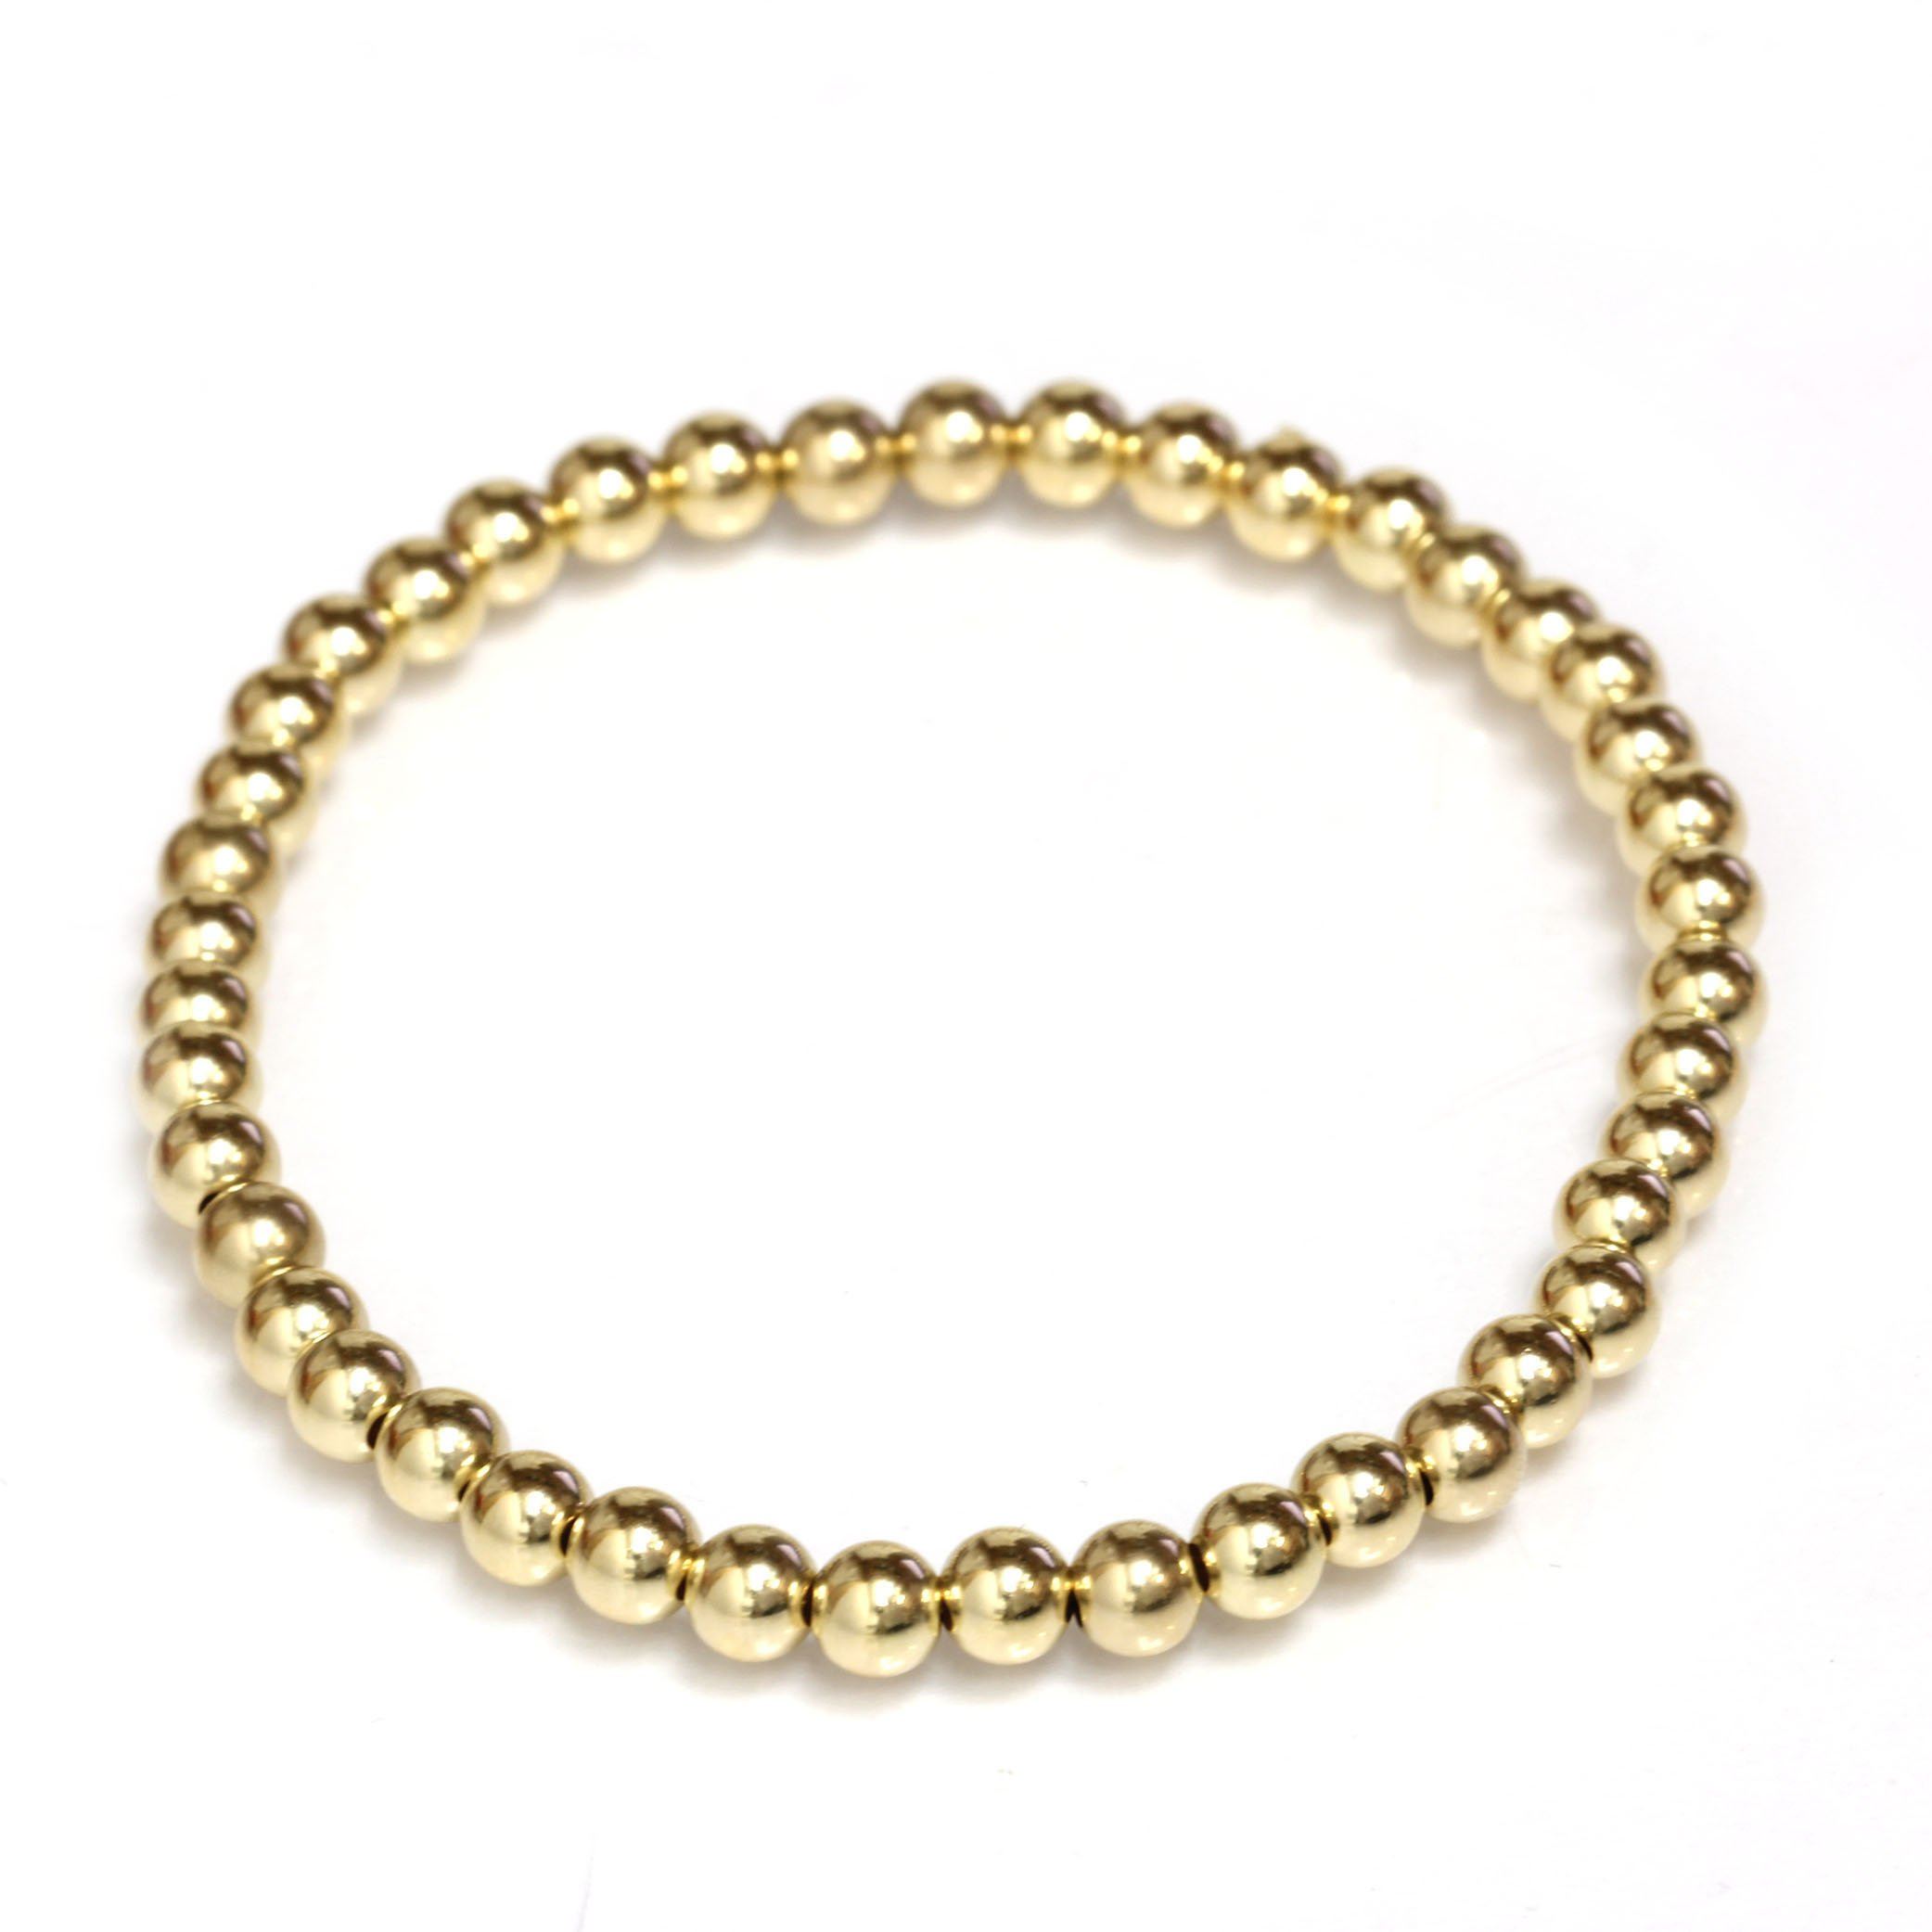 Seven Seas Pearls Bead Stretch Elastic Bracelet 14k Gold Yellow, White and Rose, Easy Slid On (6, Yellow-Gold)